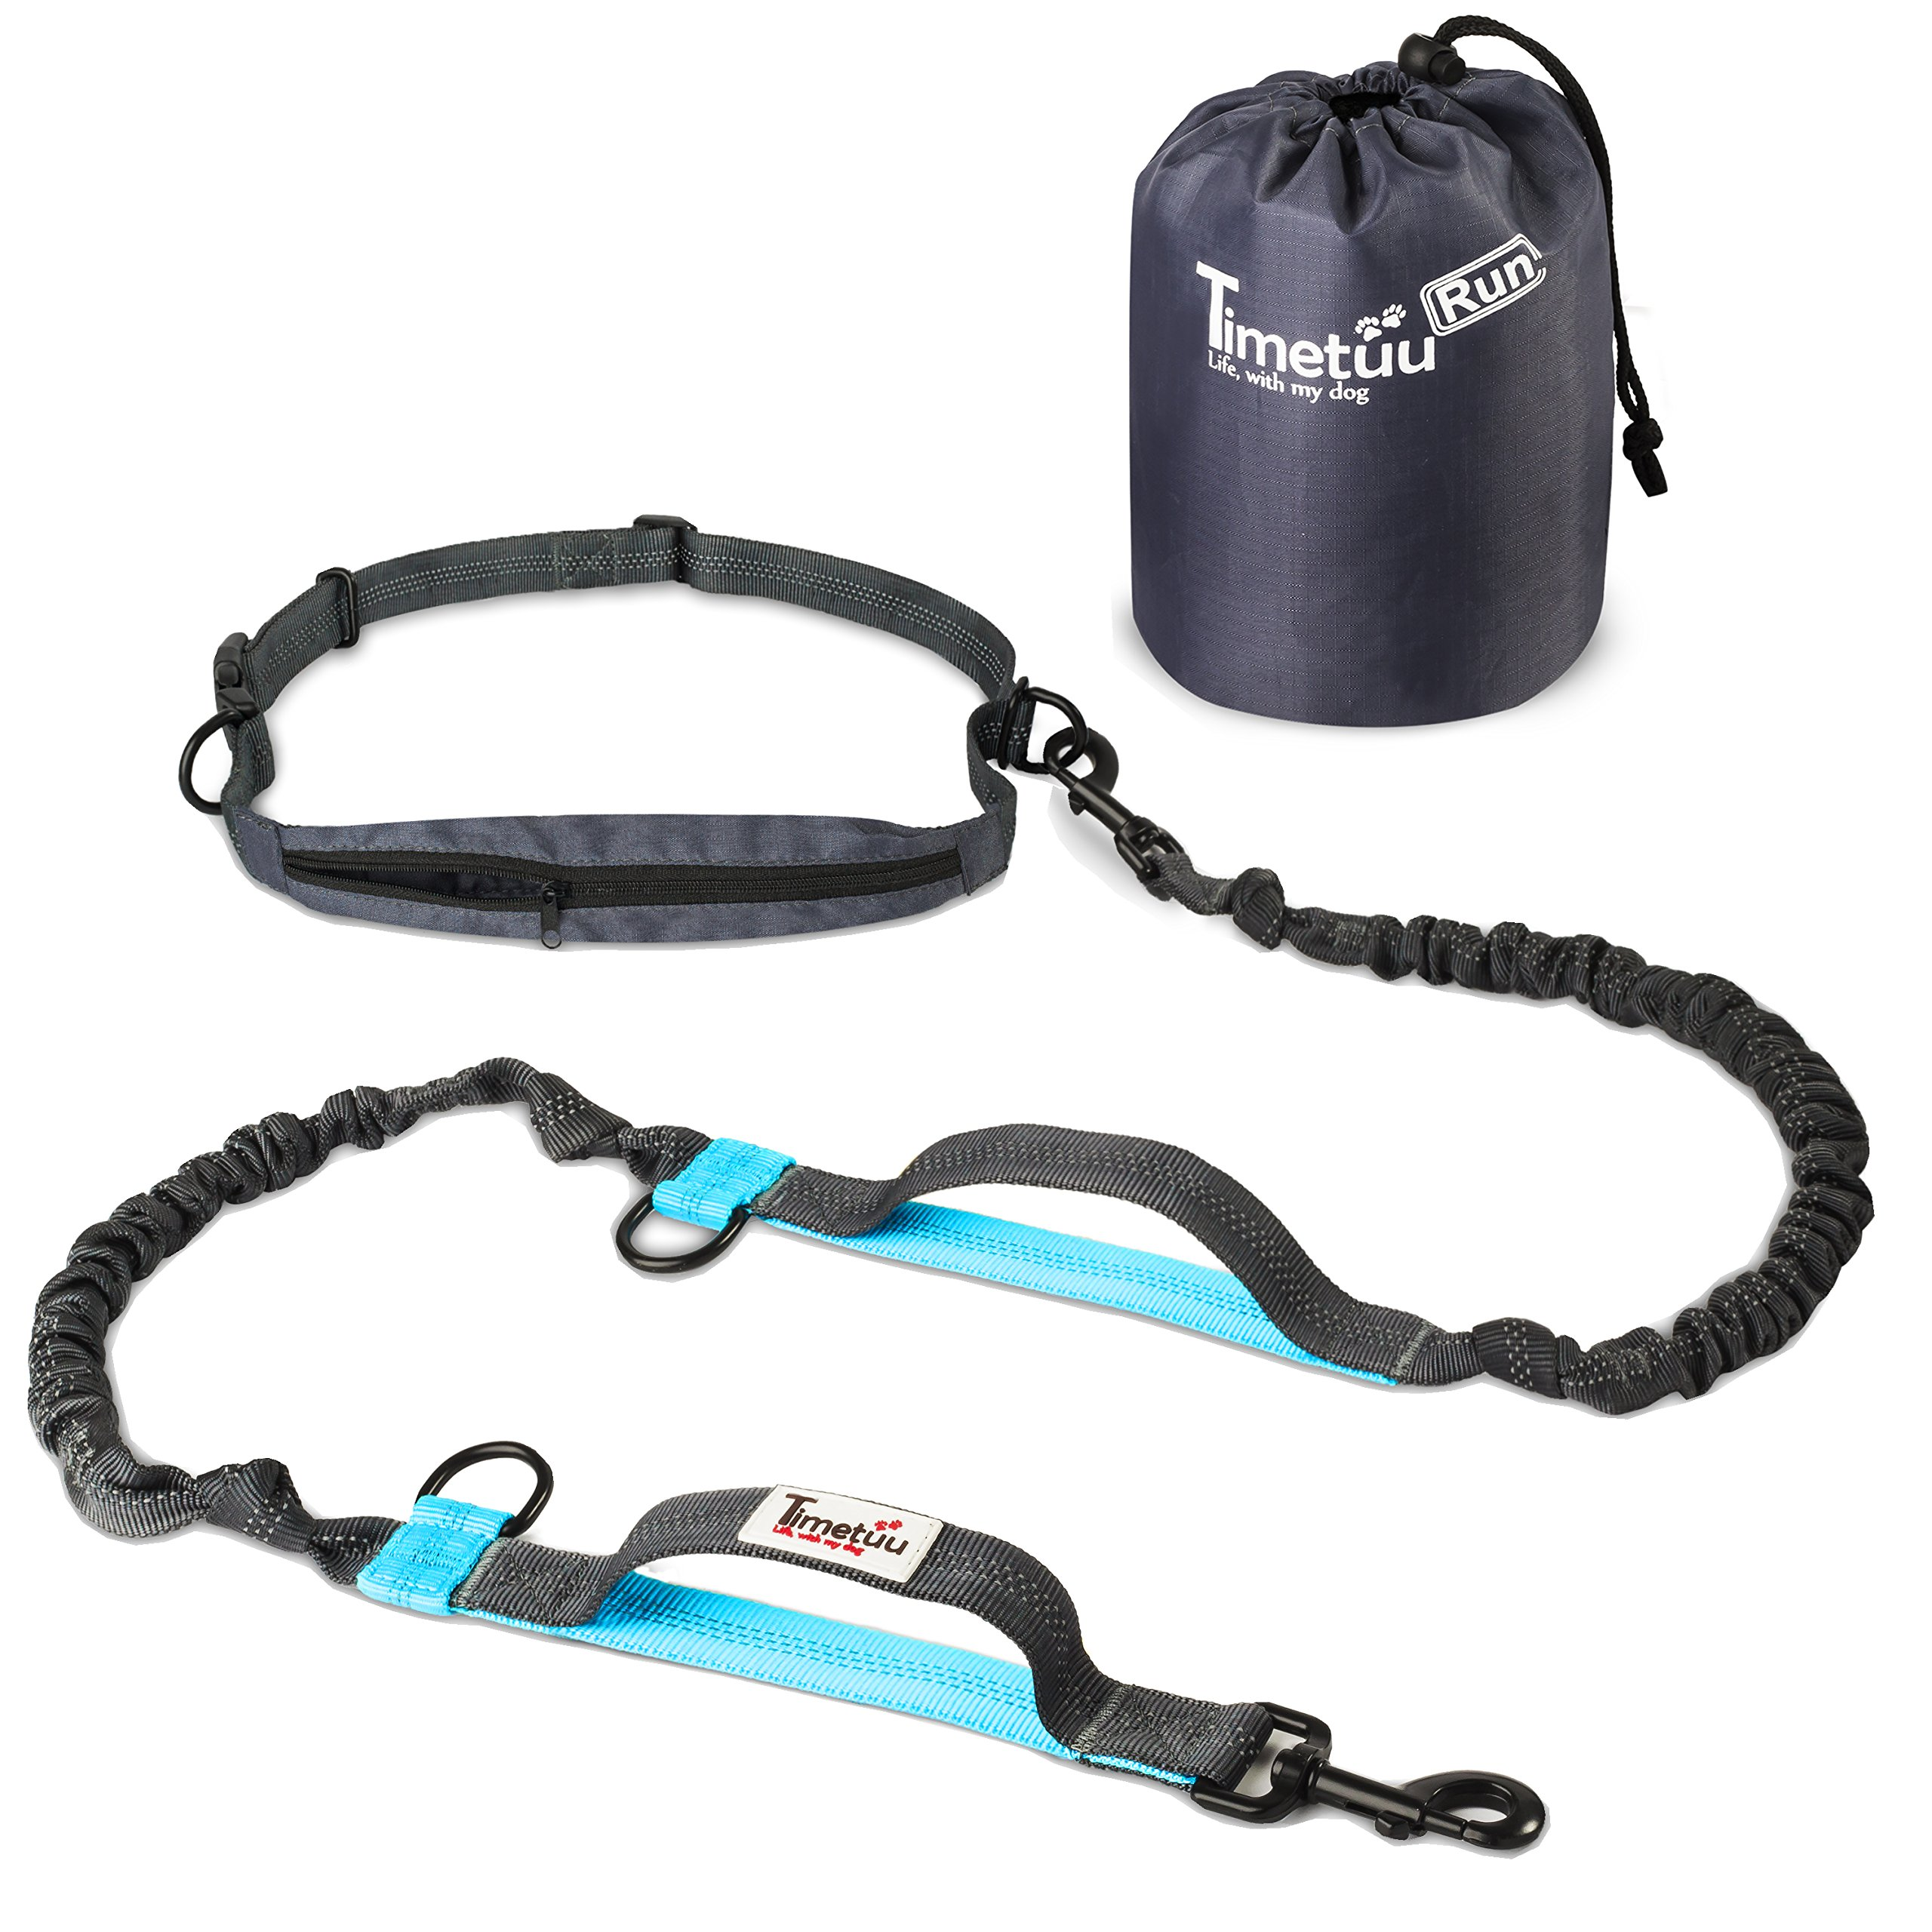 TimeTuu Run Adjustable Hands Free Dog Leash Two Elastic Bungees For Shock Absorption With Waist Belt Pouch - 60 Inches Long Turquoise Blue